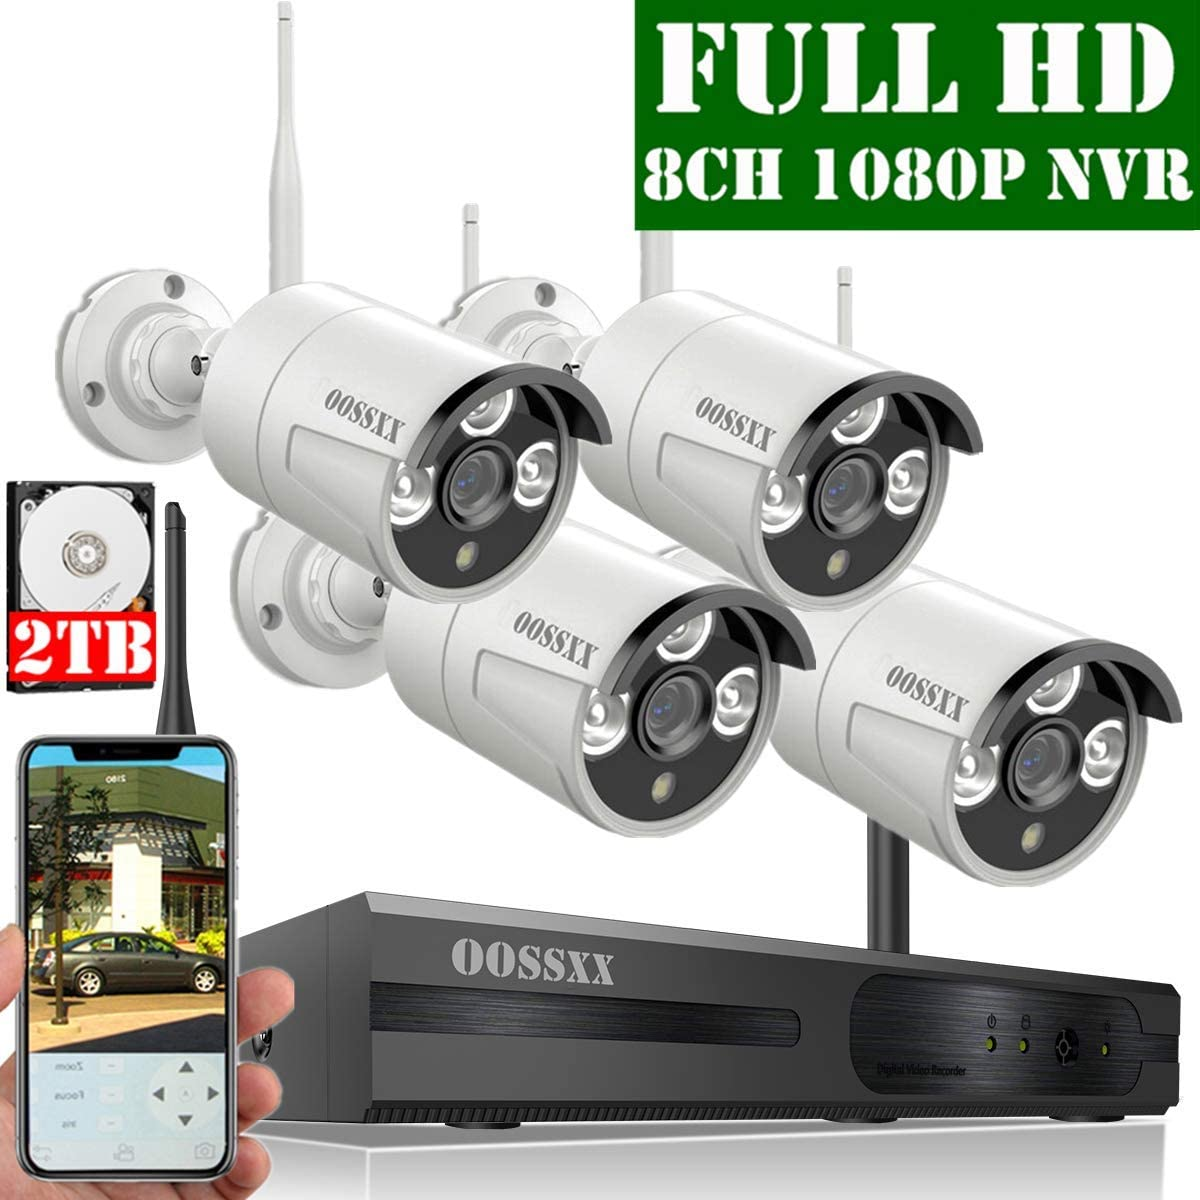 2019 Update OOSSXX 8-Channel HD 1080P Wireless Security Camera System,4Pcs 1080P 2.0 Megapixel Wireless Indoor Outdoor IR Bullet IP Cameras,P2P,App, HDMI Cord 2TB HDD Pre-Install